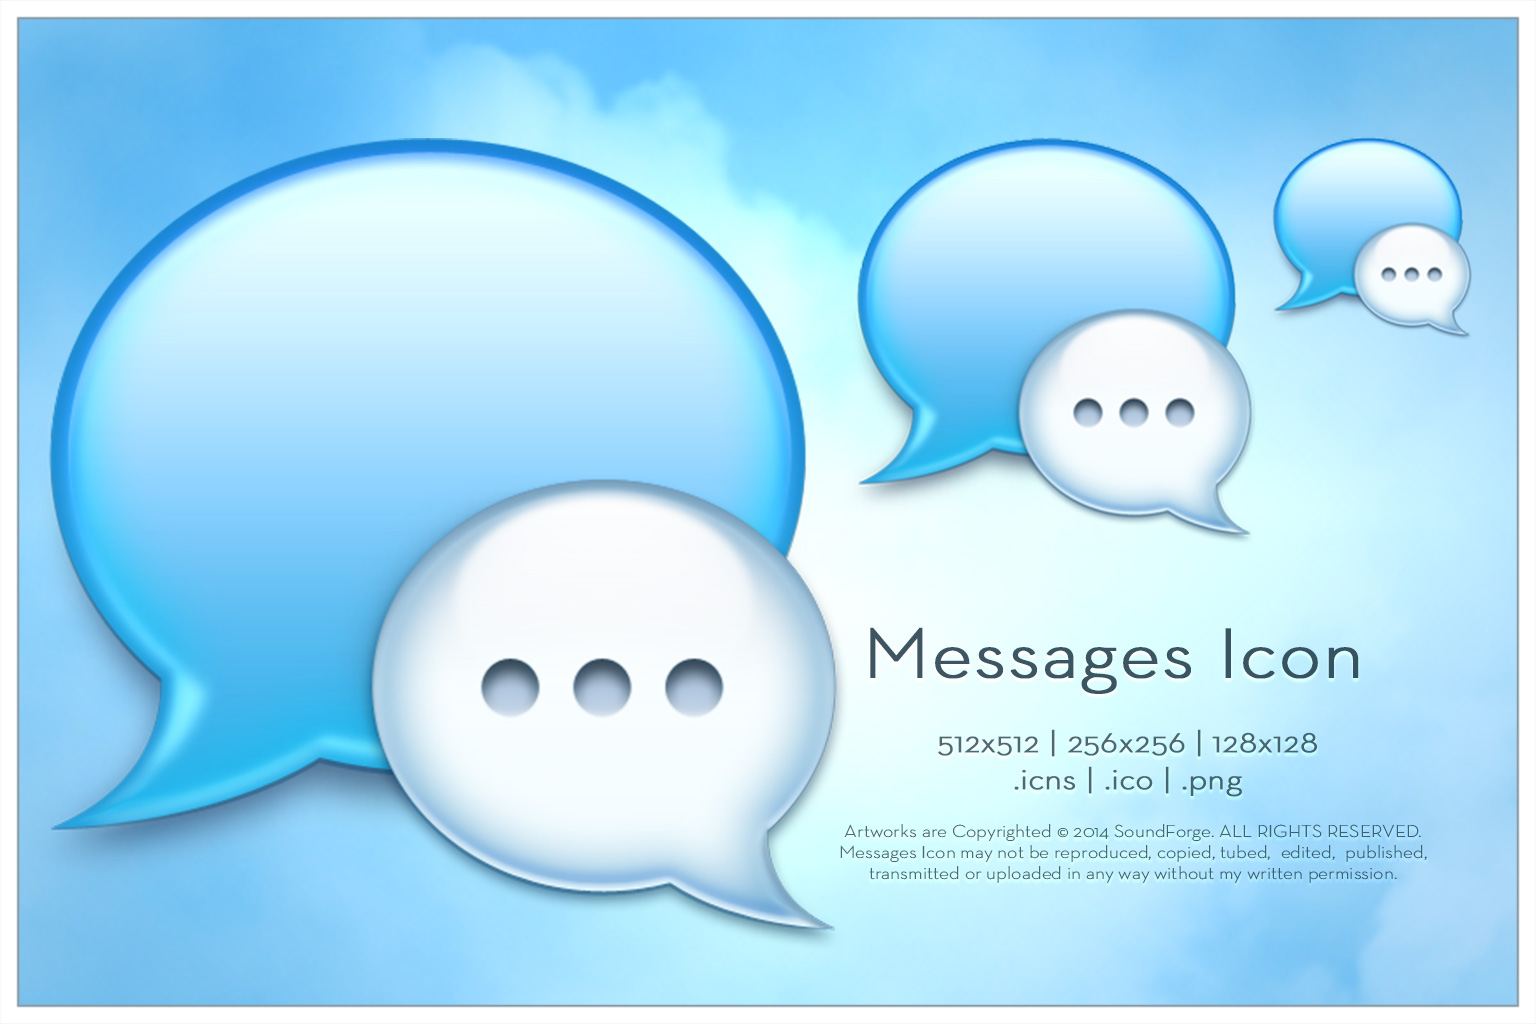 Messages Icon by SoundForge